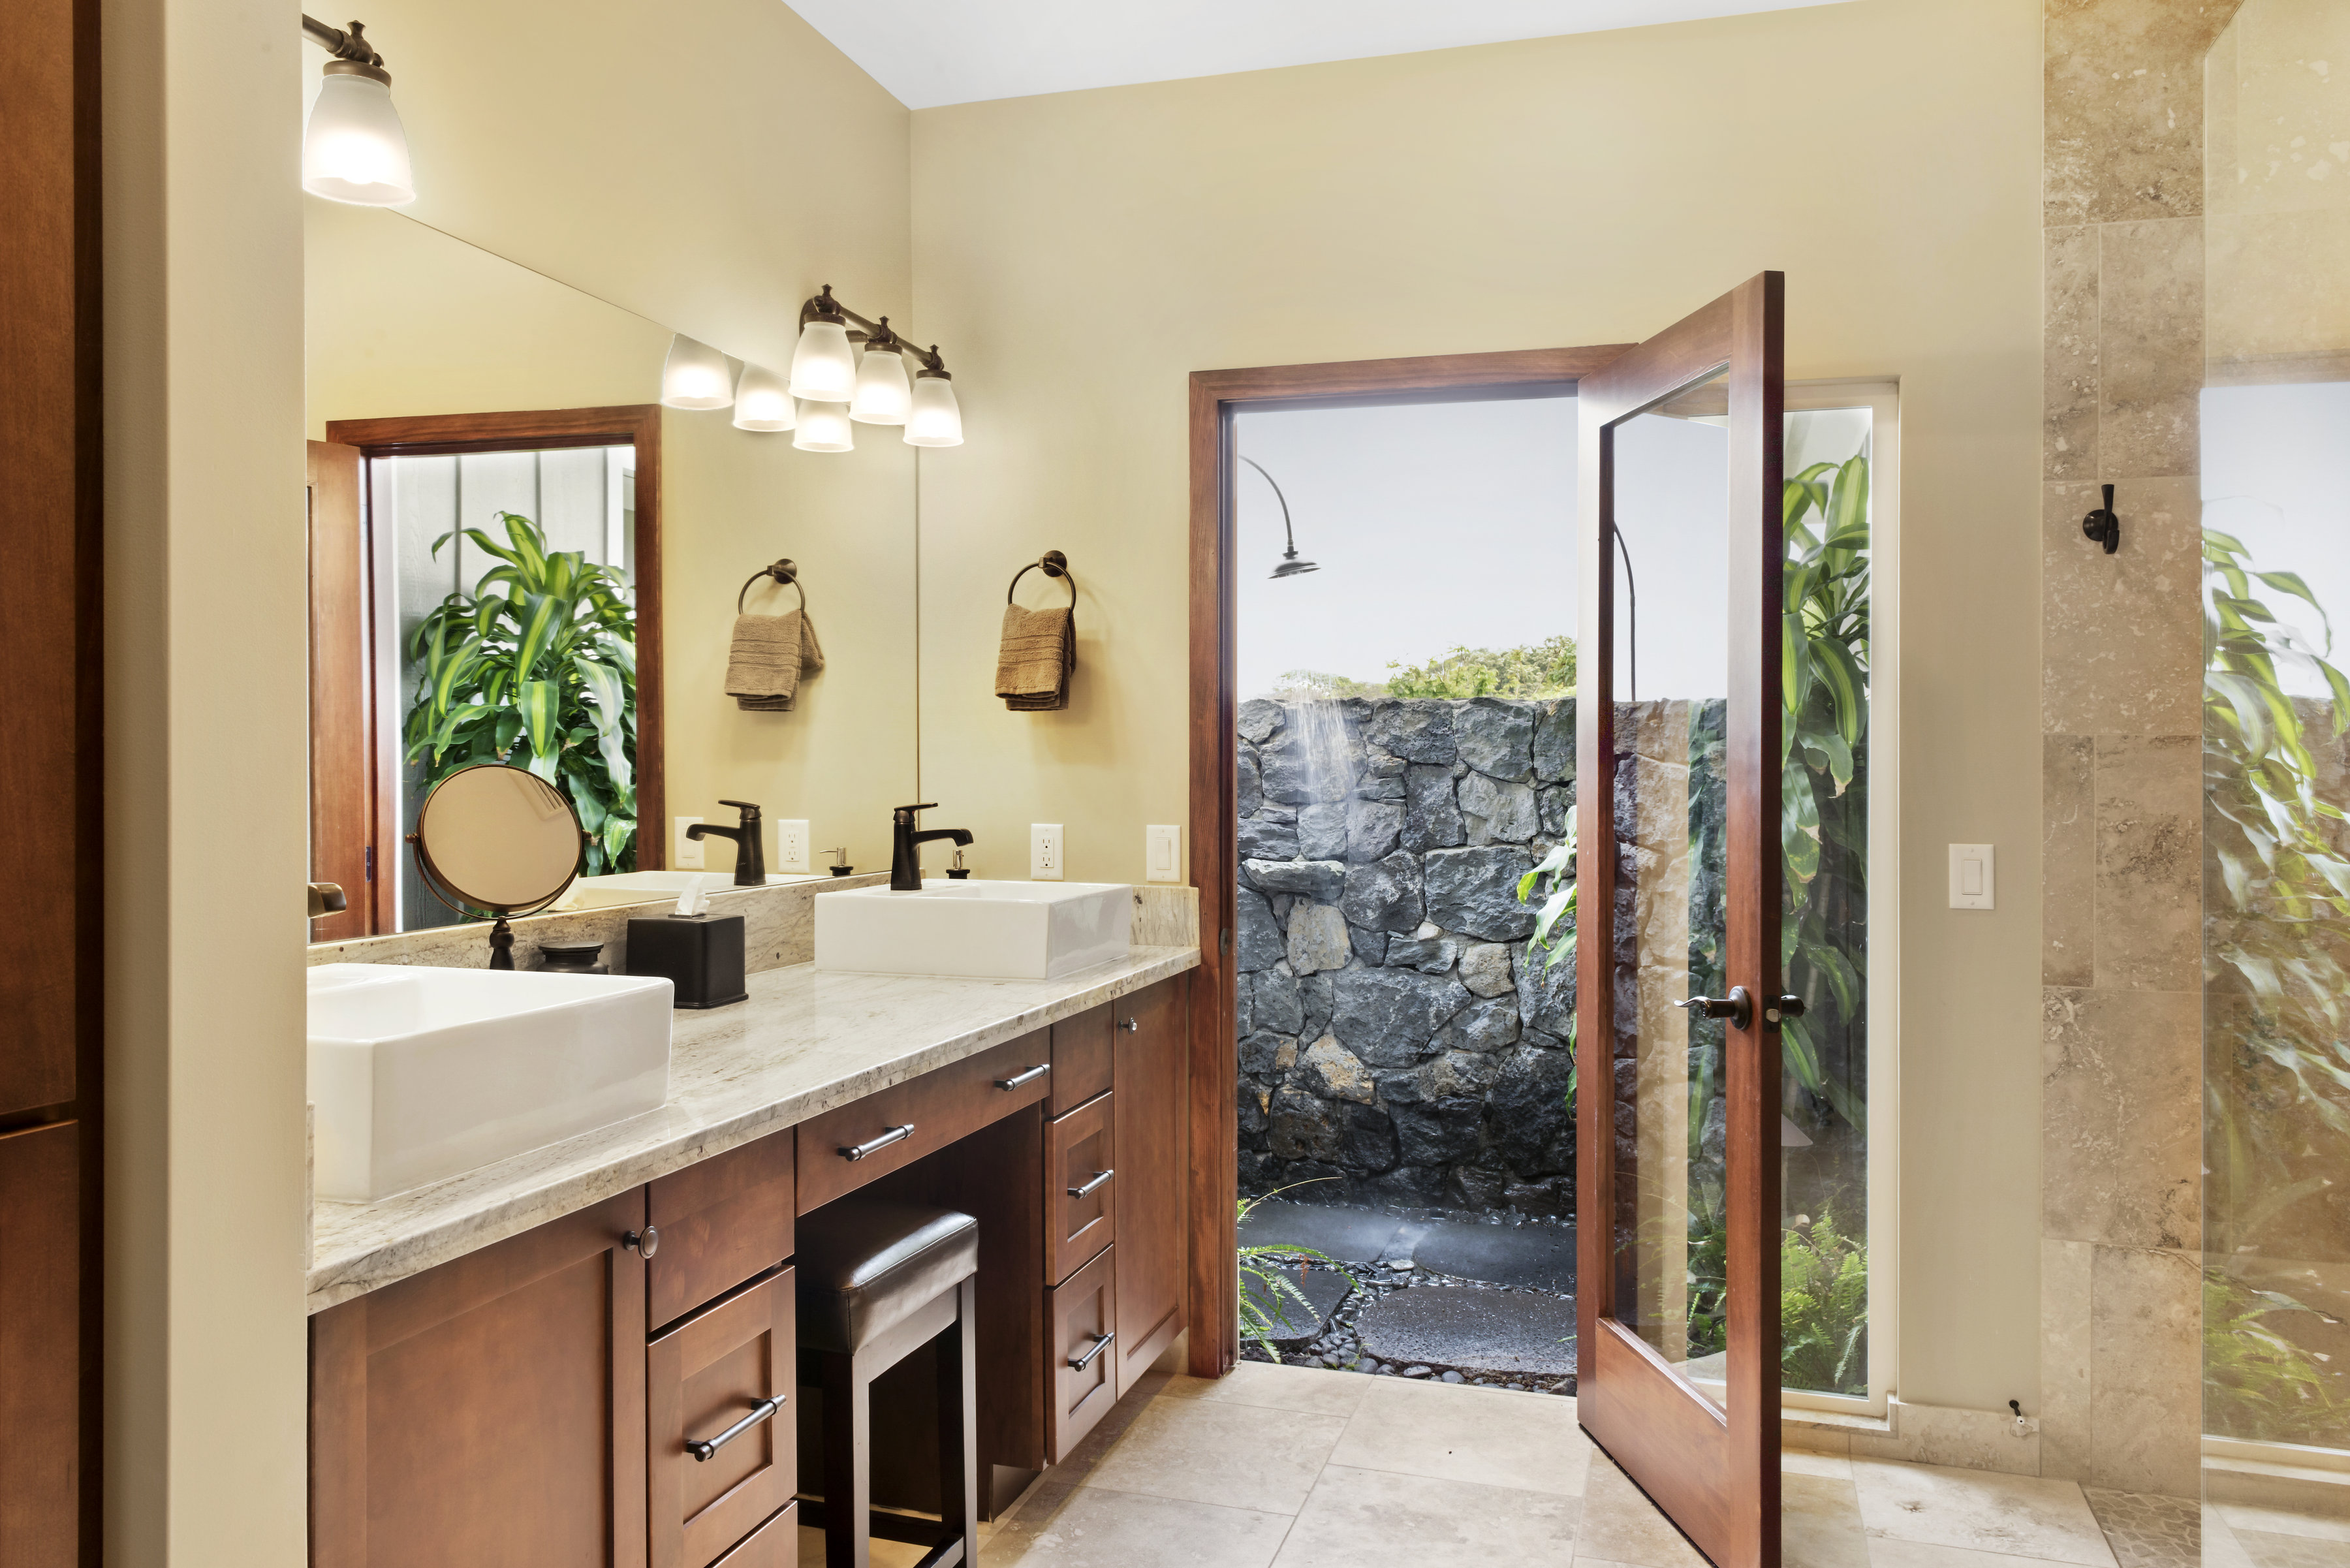 Second master bathroom with outdoor shower.